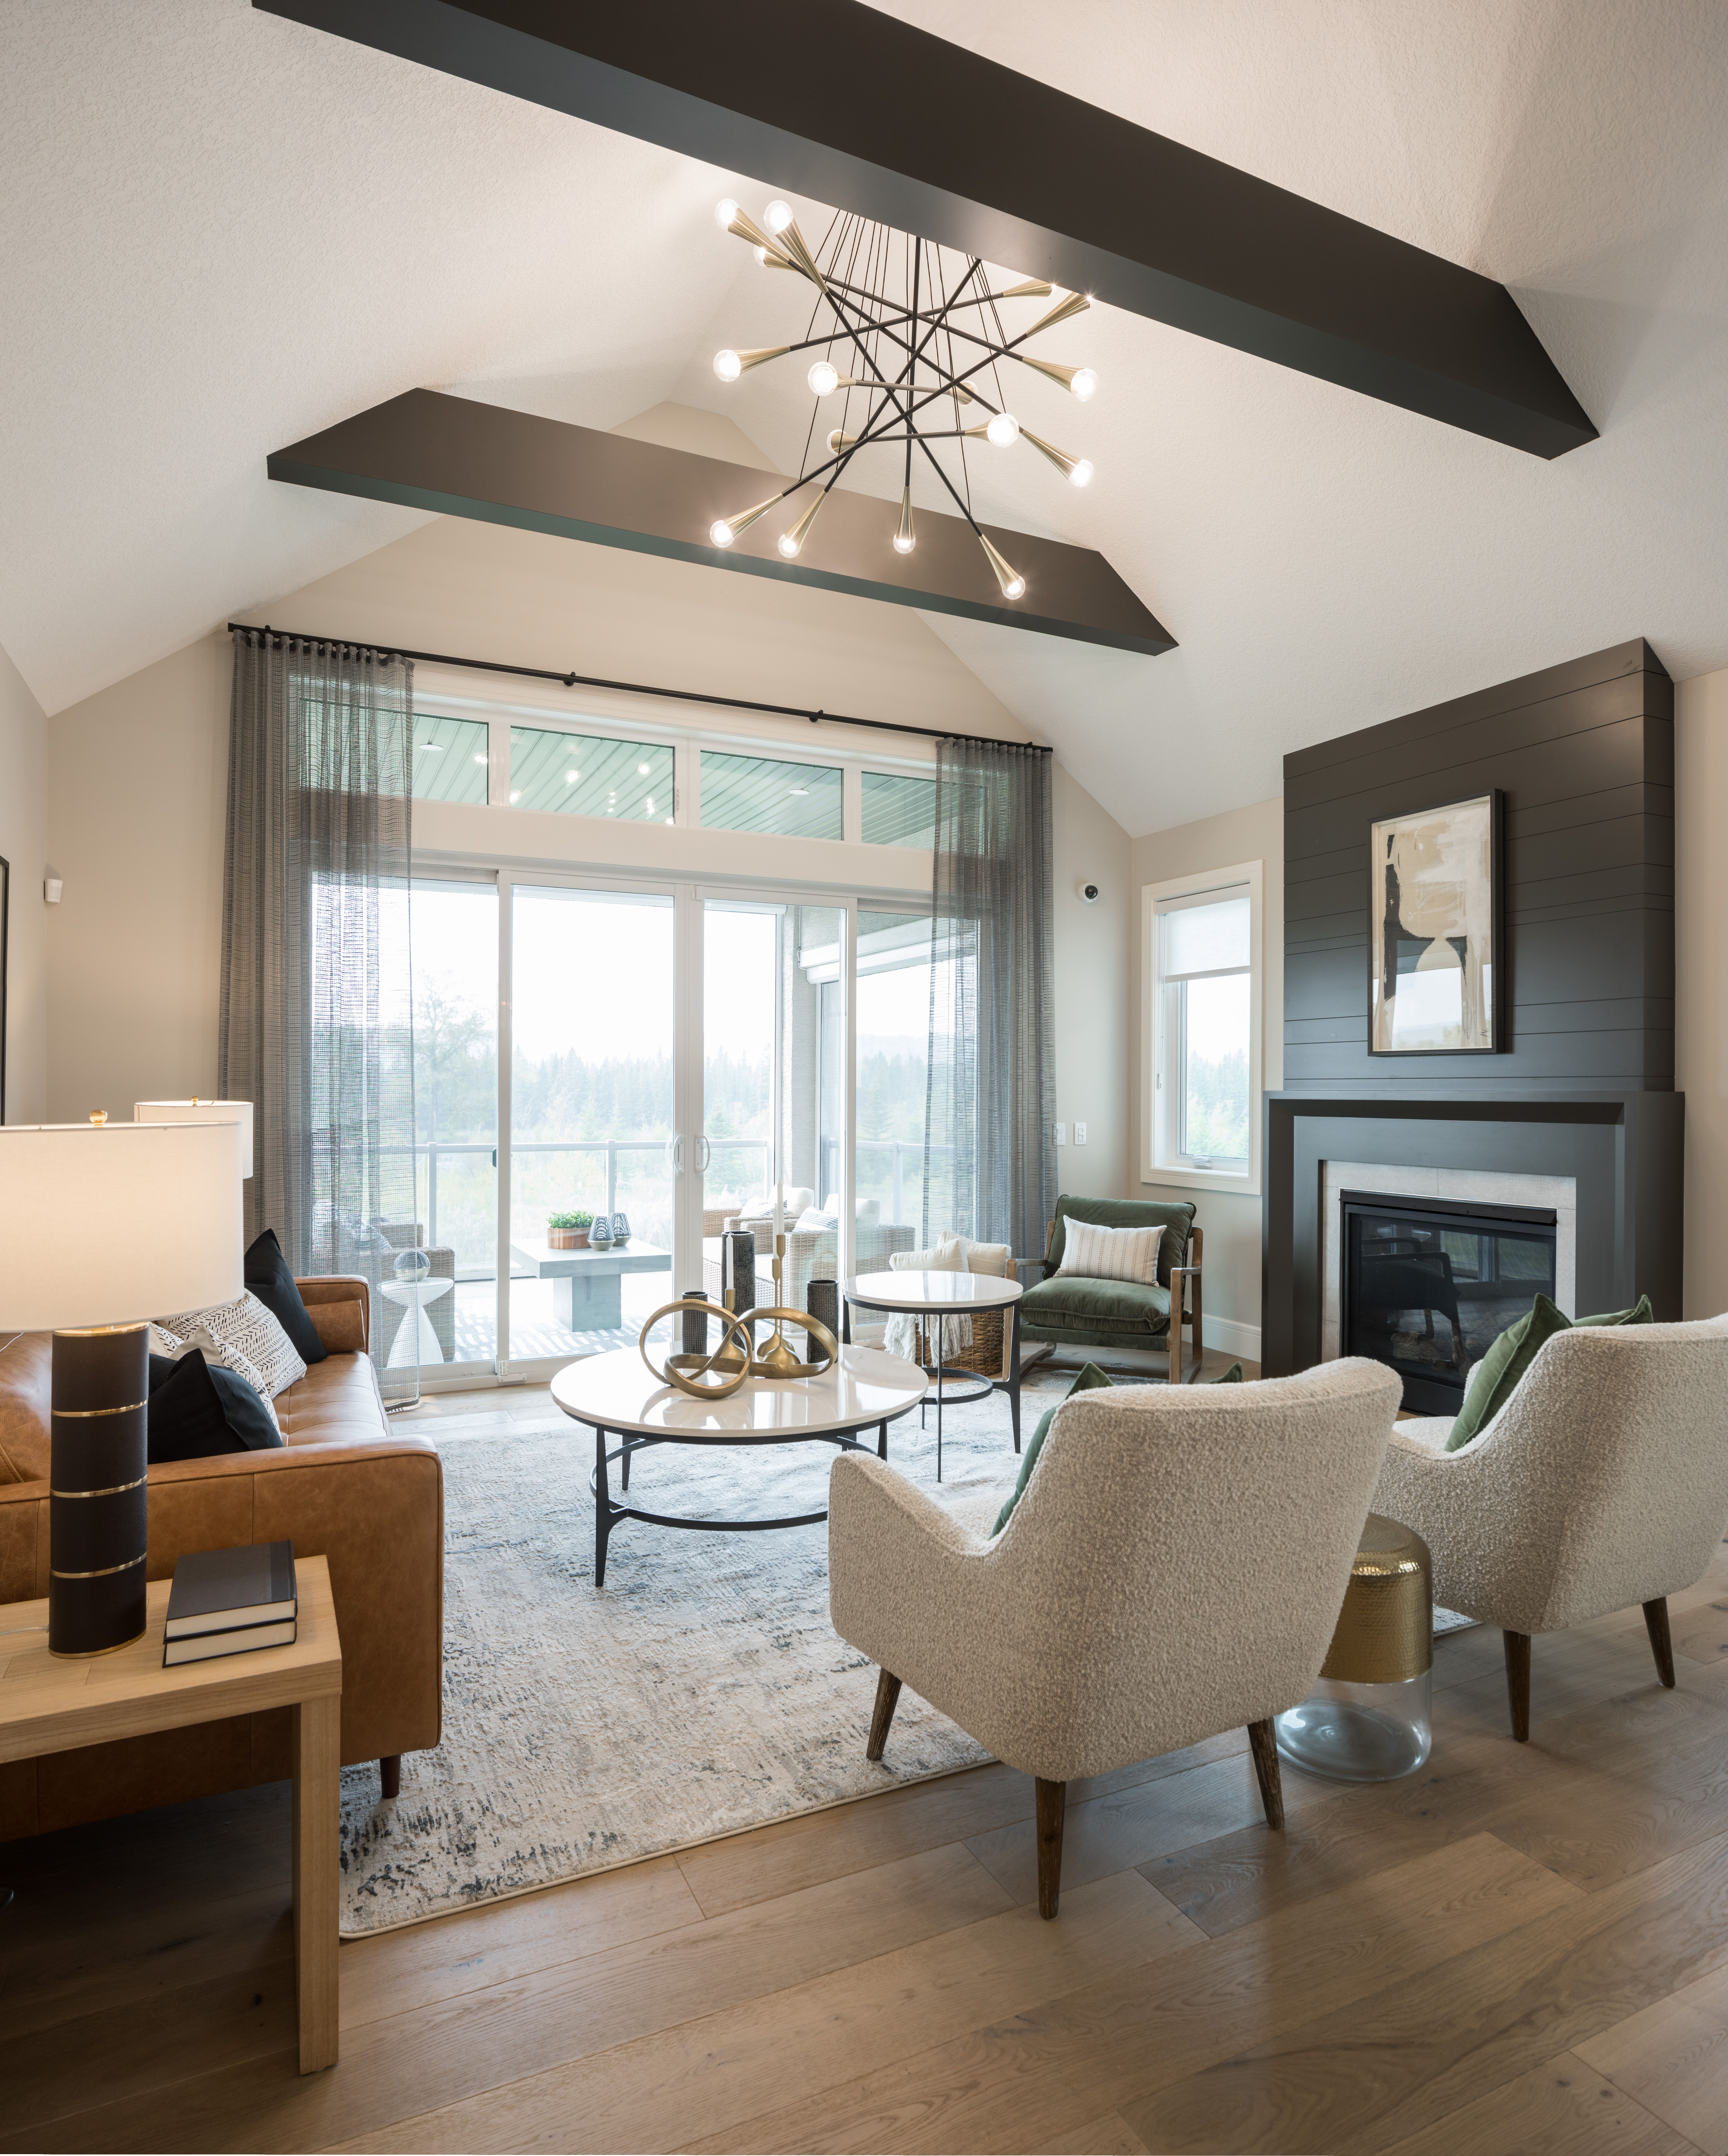 Projects Rochelle Cote The Great Room From 682 Riverstone Calbridge Homes Residential Design Interior Design Home [ 8193 x 6566 Pixel ]